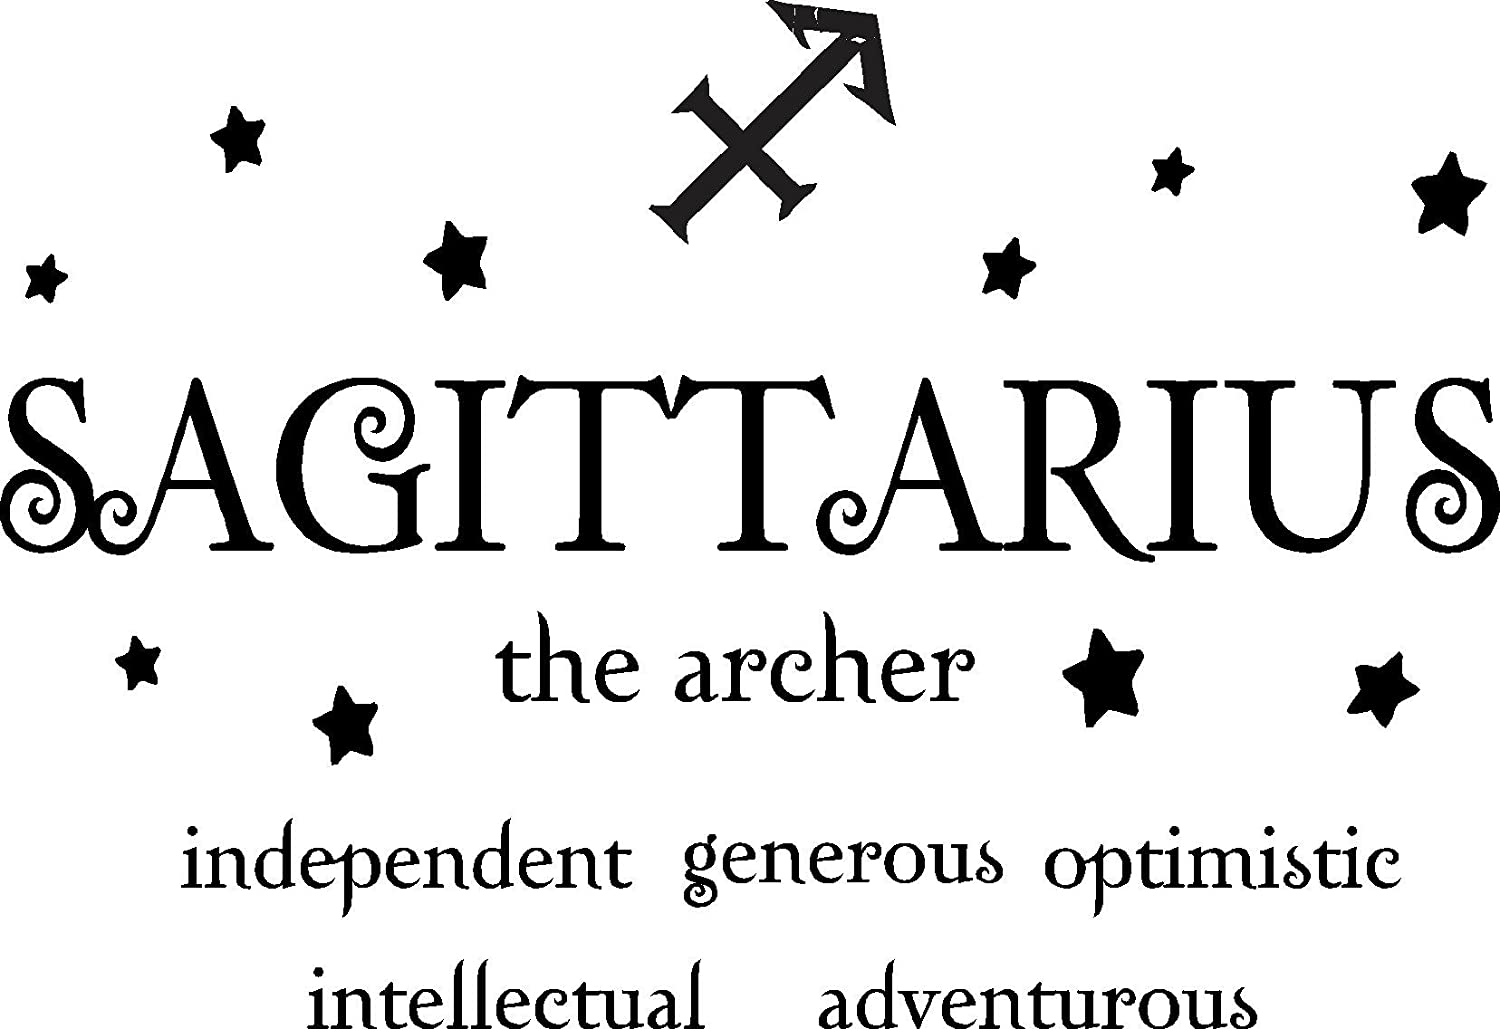 Sticker Perfect Sagittarius The Archer Horoscope Zodiac Vinyl Wall Art Decal Home Decor Sayings